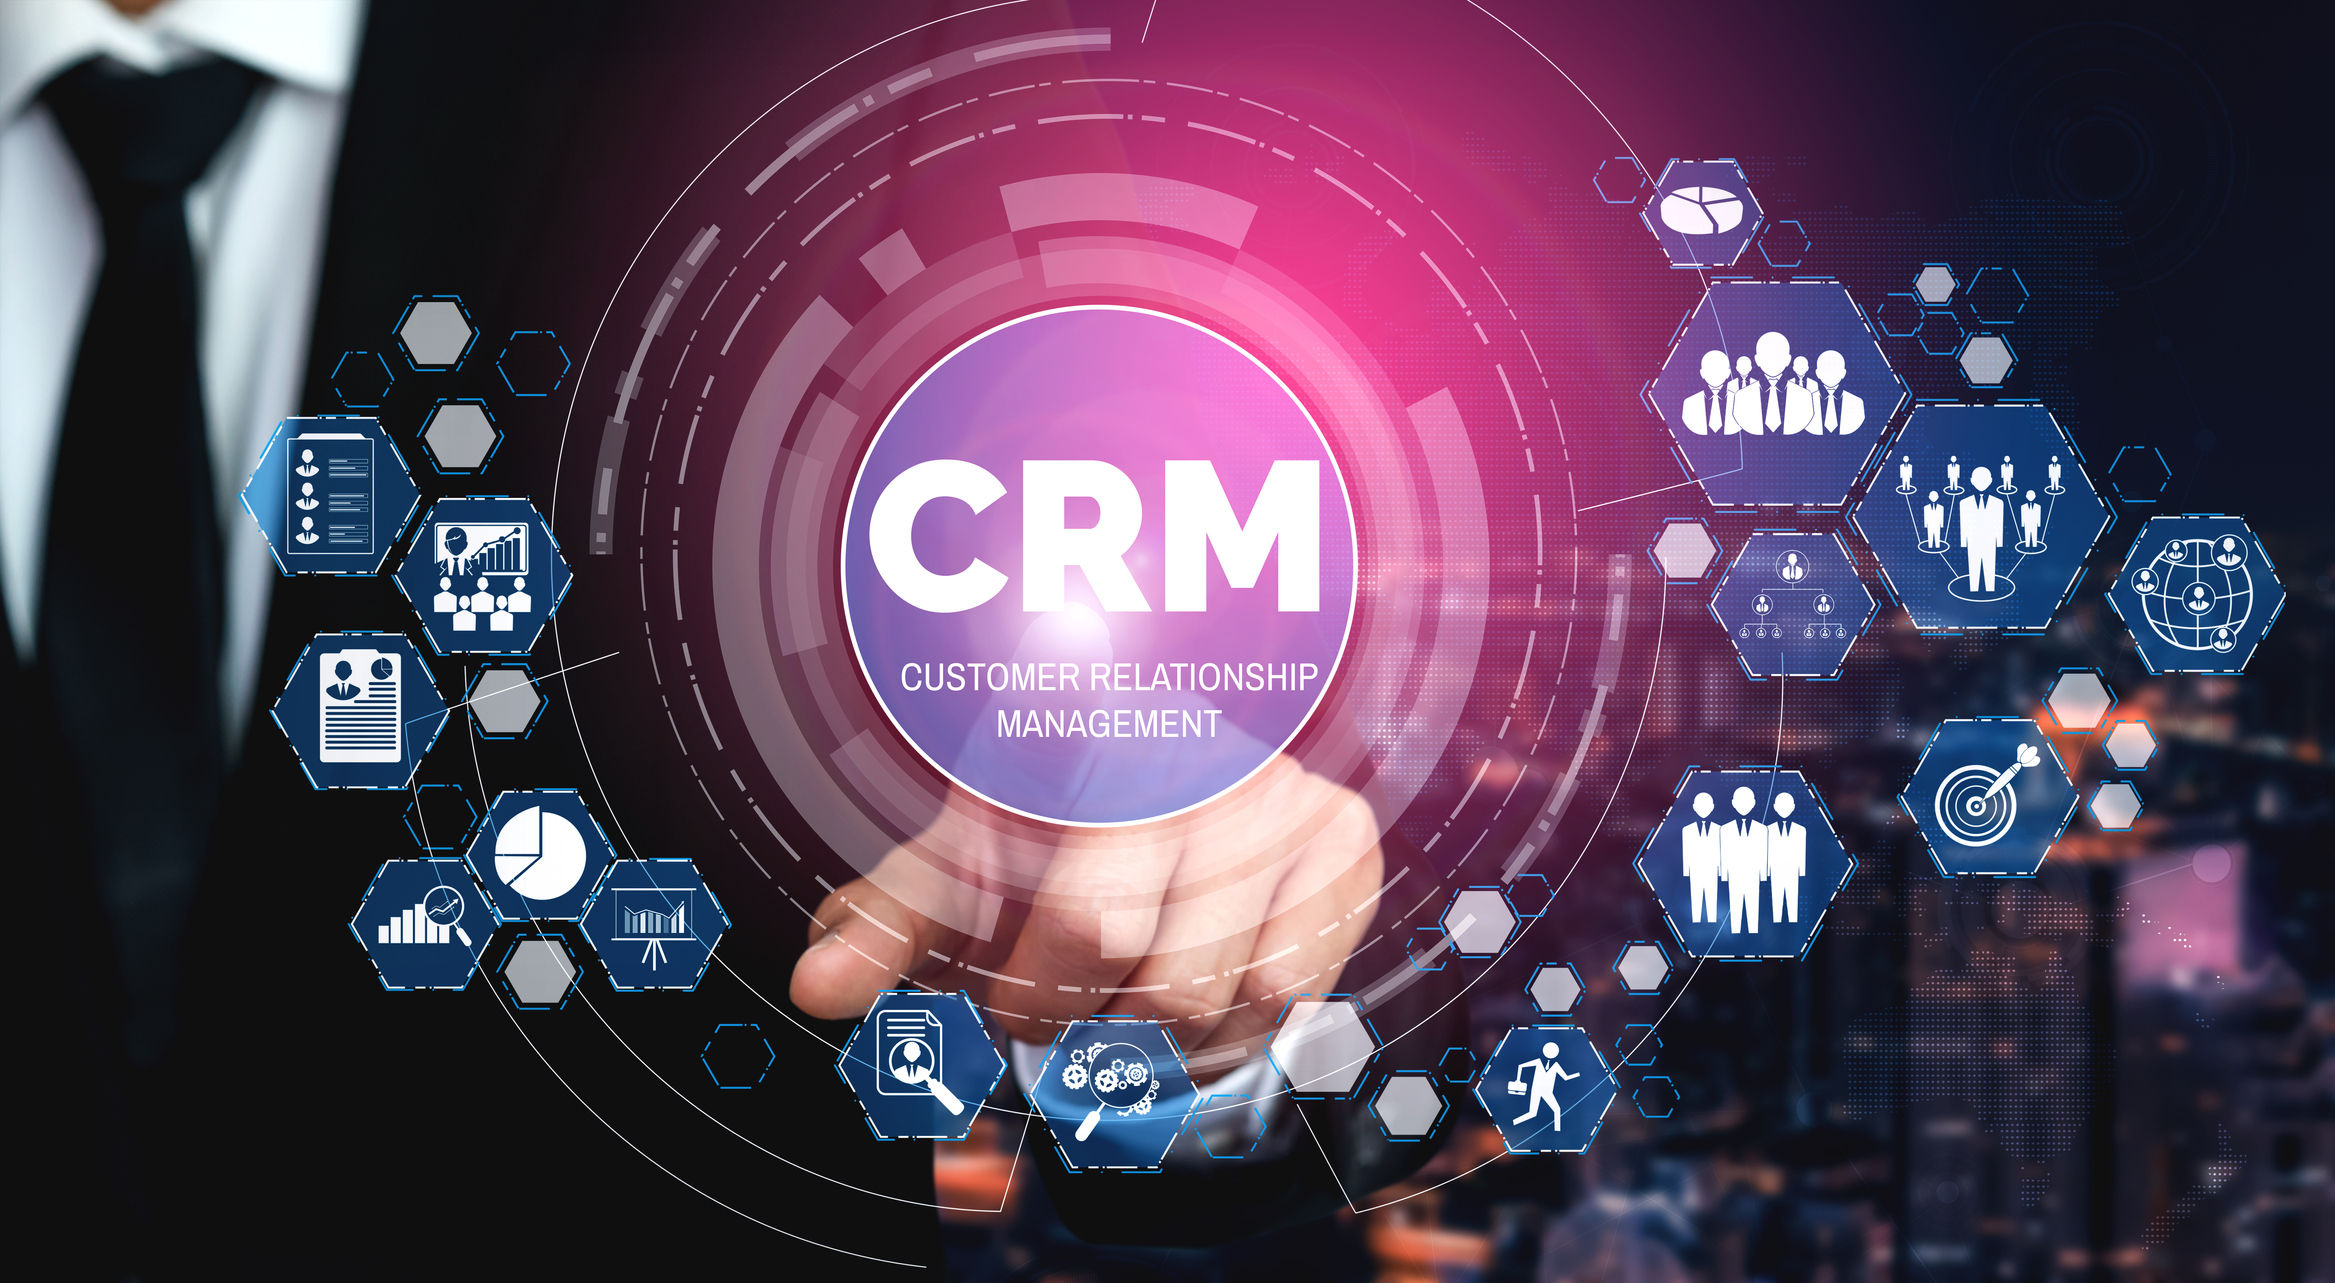 CRM Customer Relationship Management for small businesses